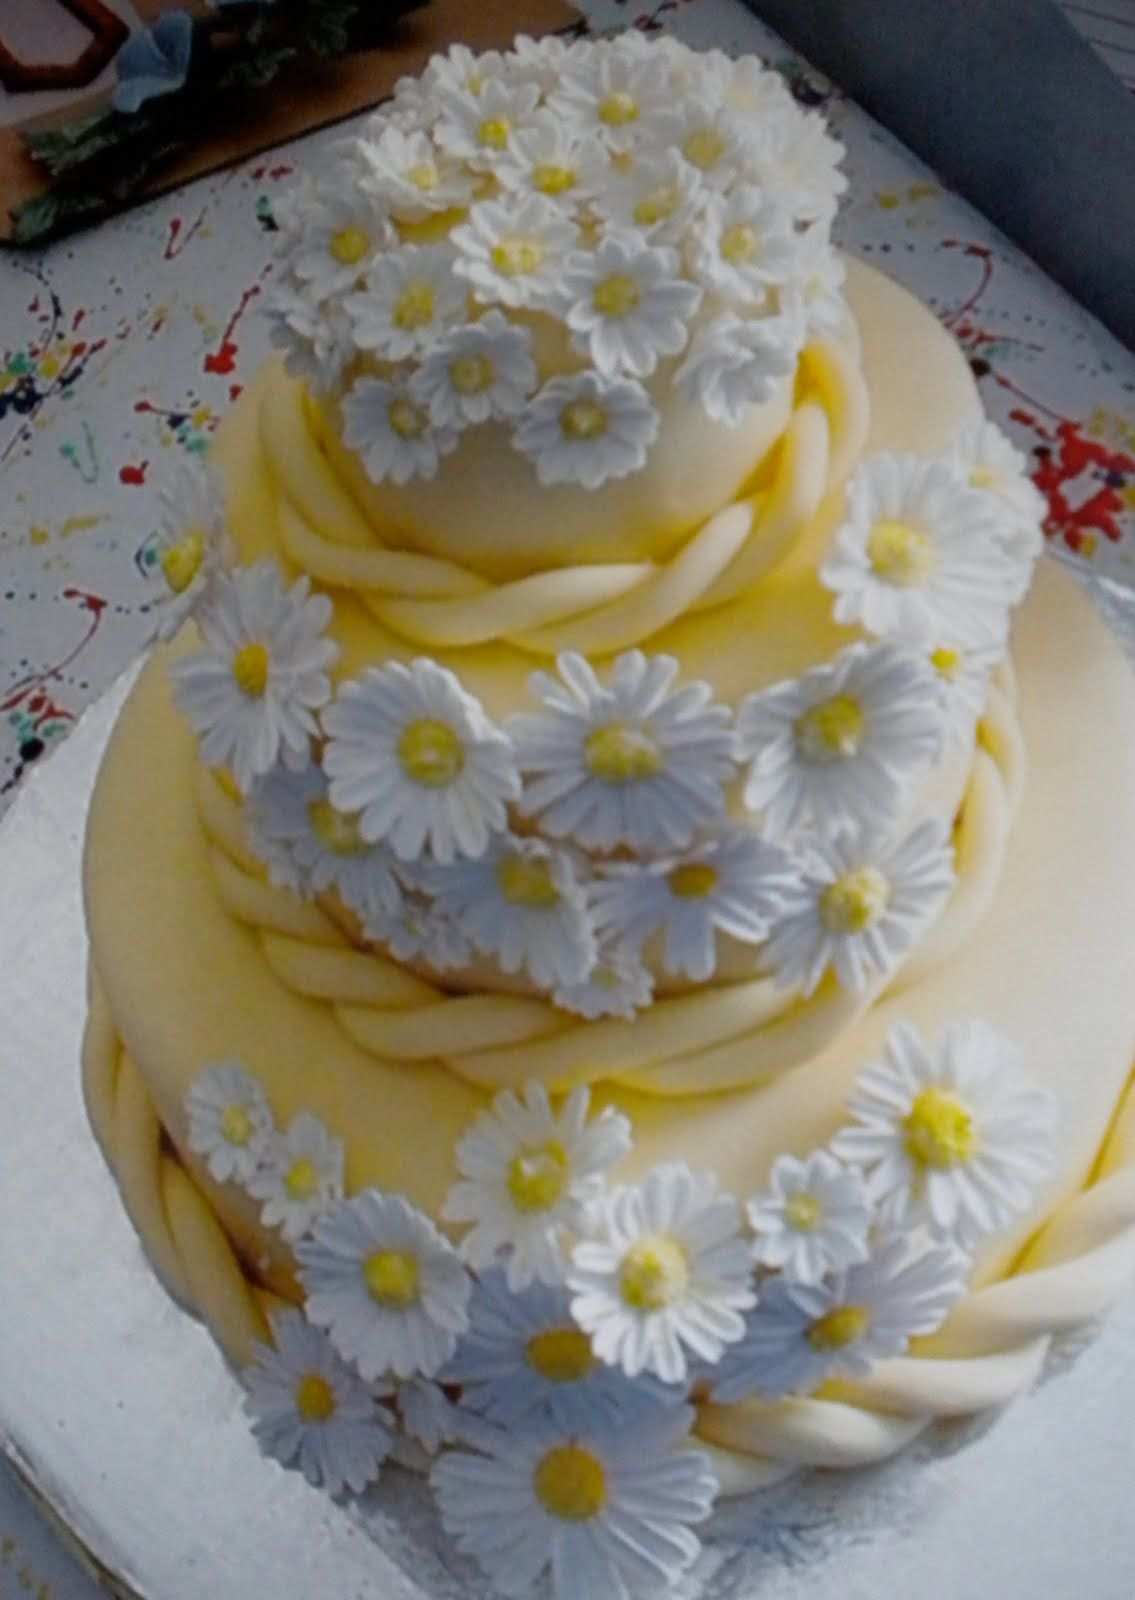 Pin By Beckey Douglas On Daisy Cakes Pinterest Cake And Food